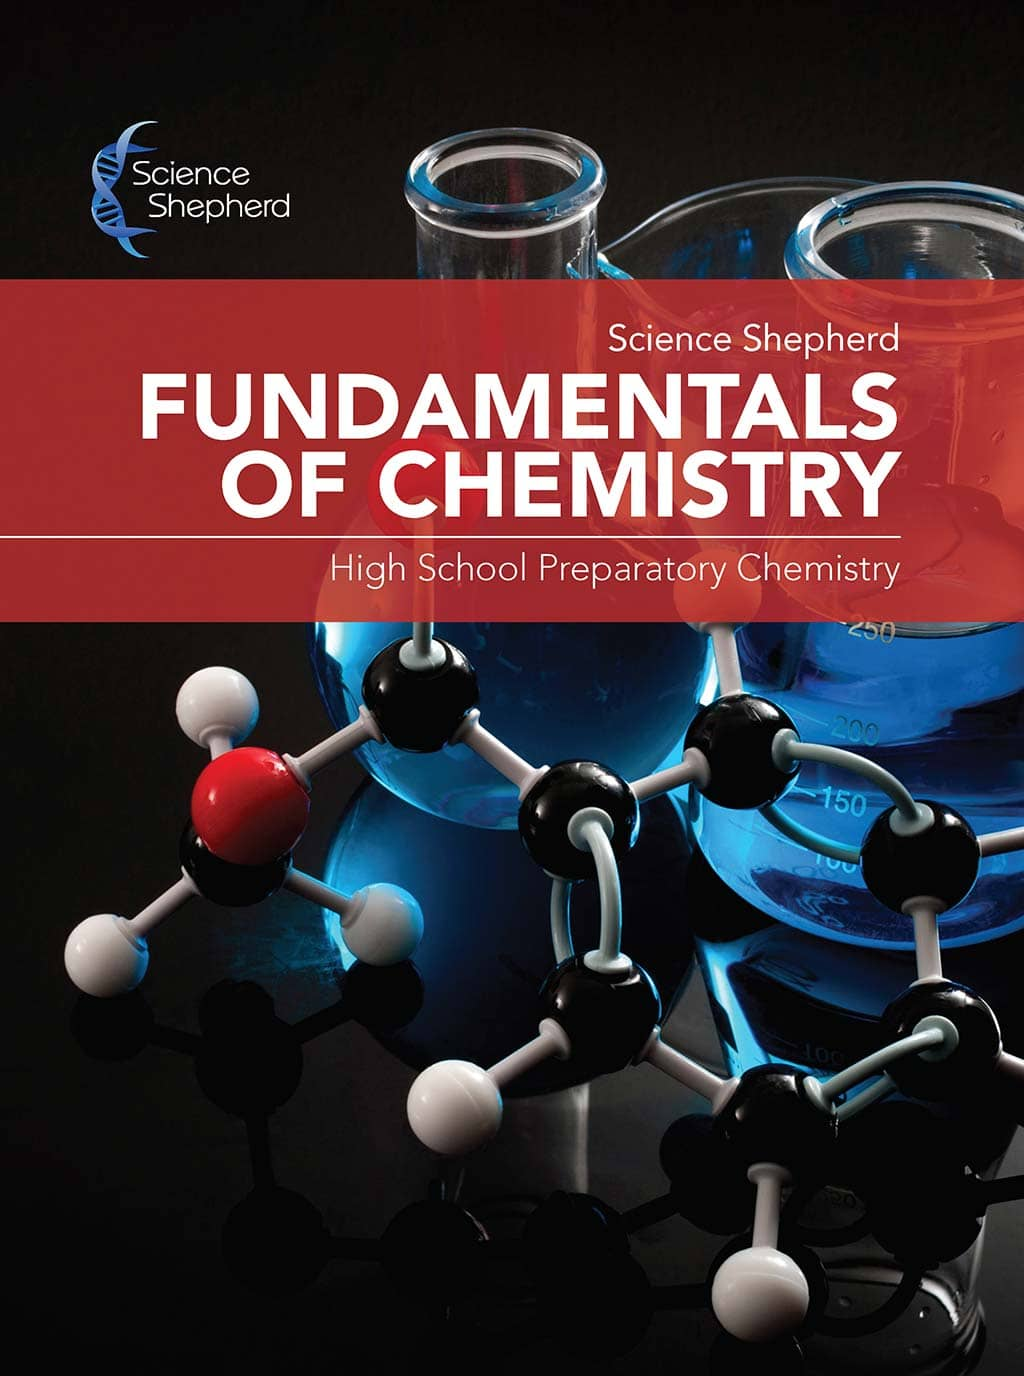 Science Shepherd Homeschool Chemistry textbook Fundamentals of Chemistry cover